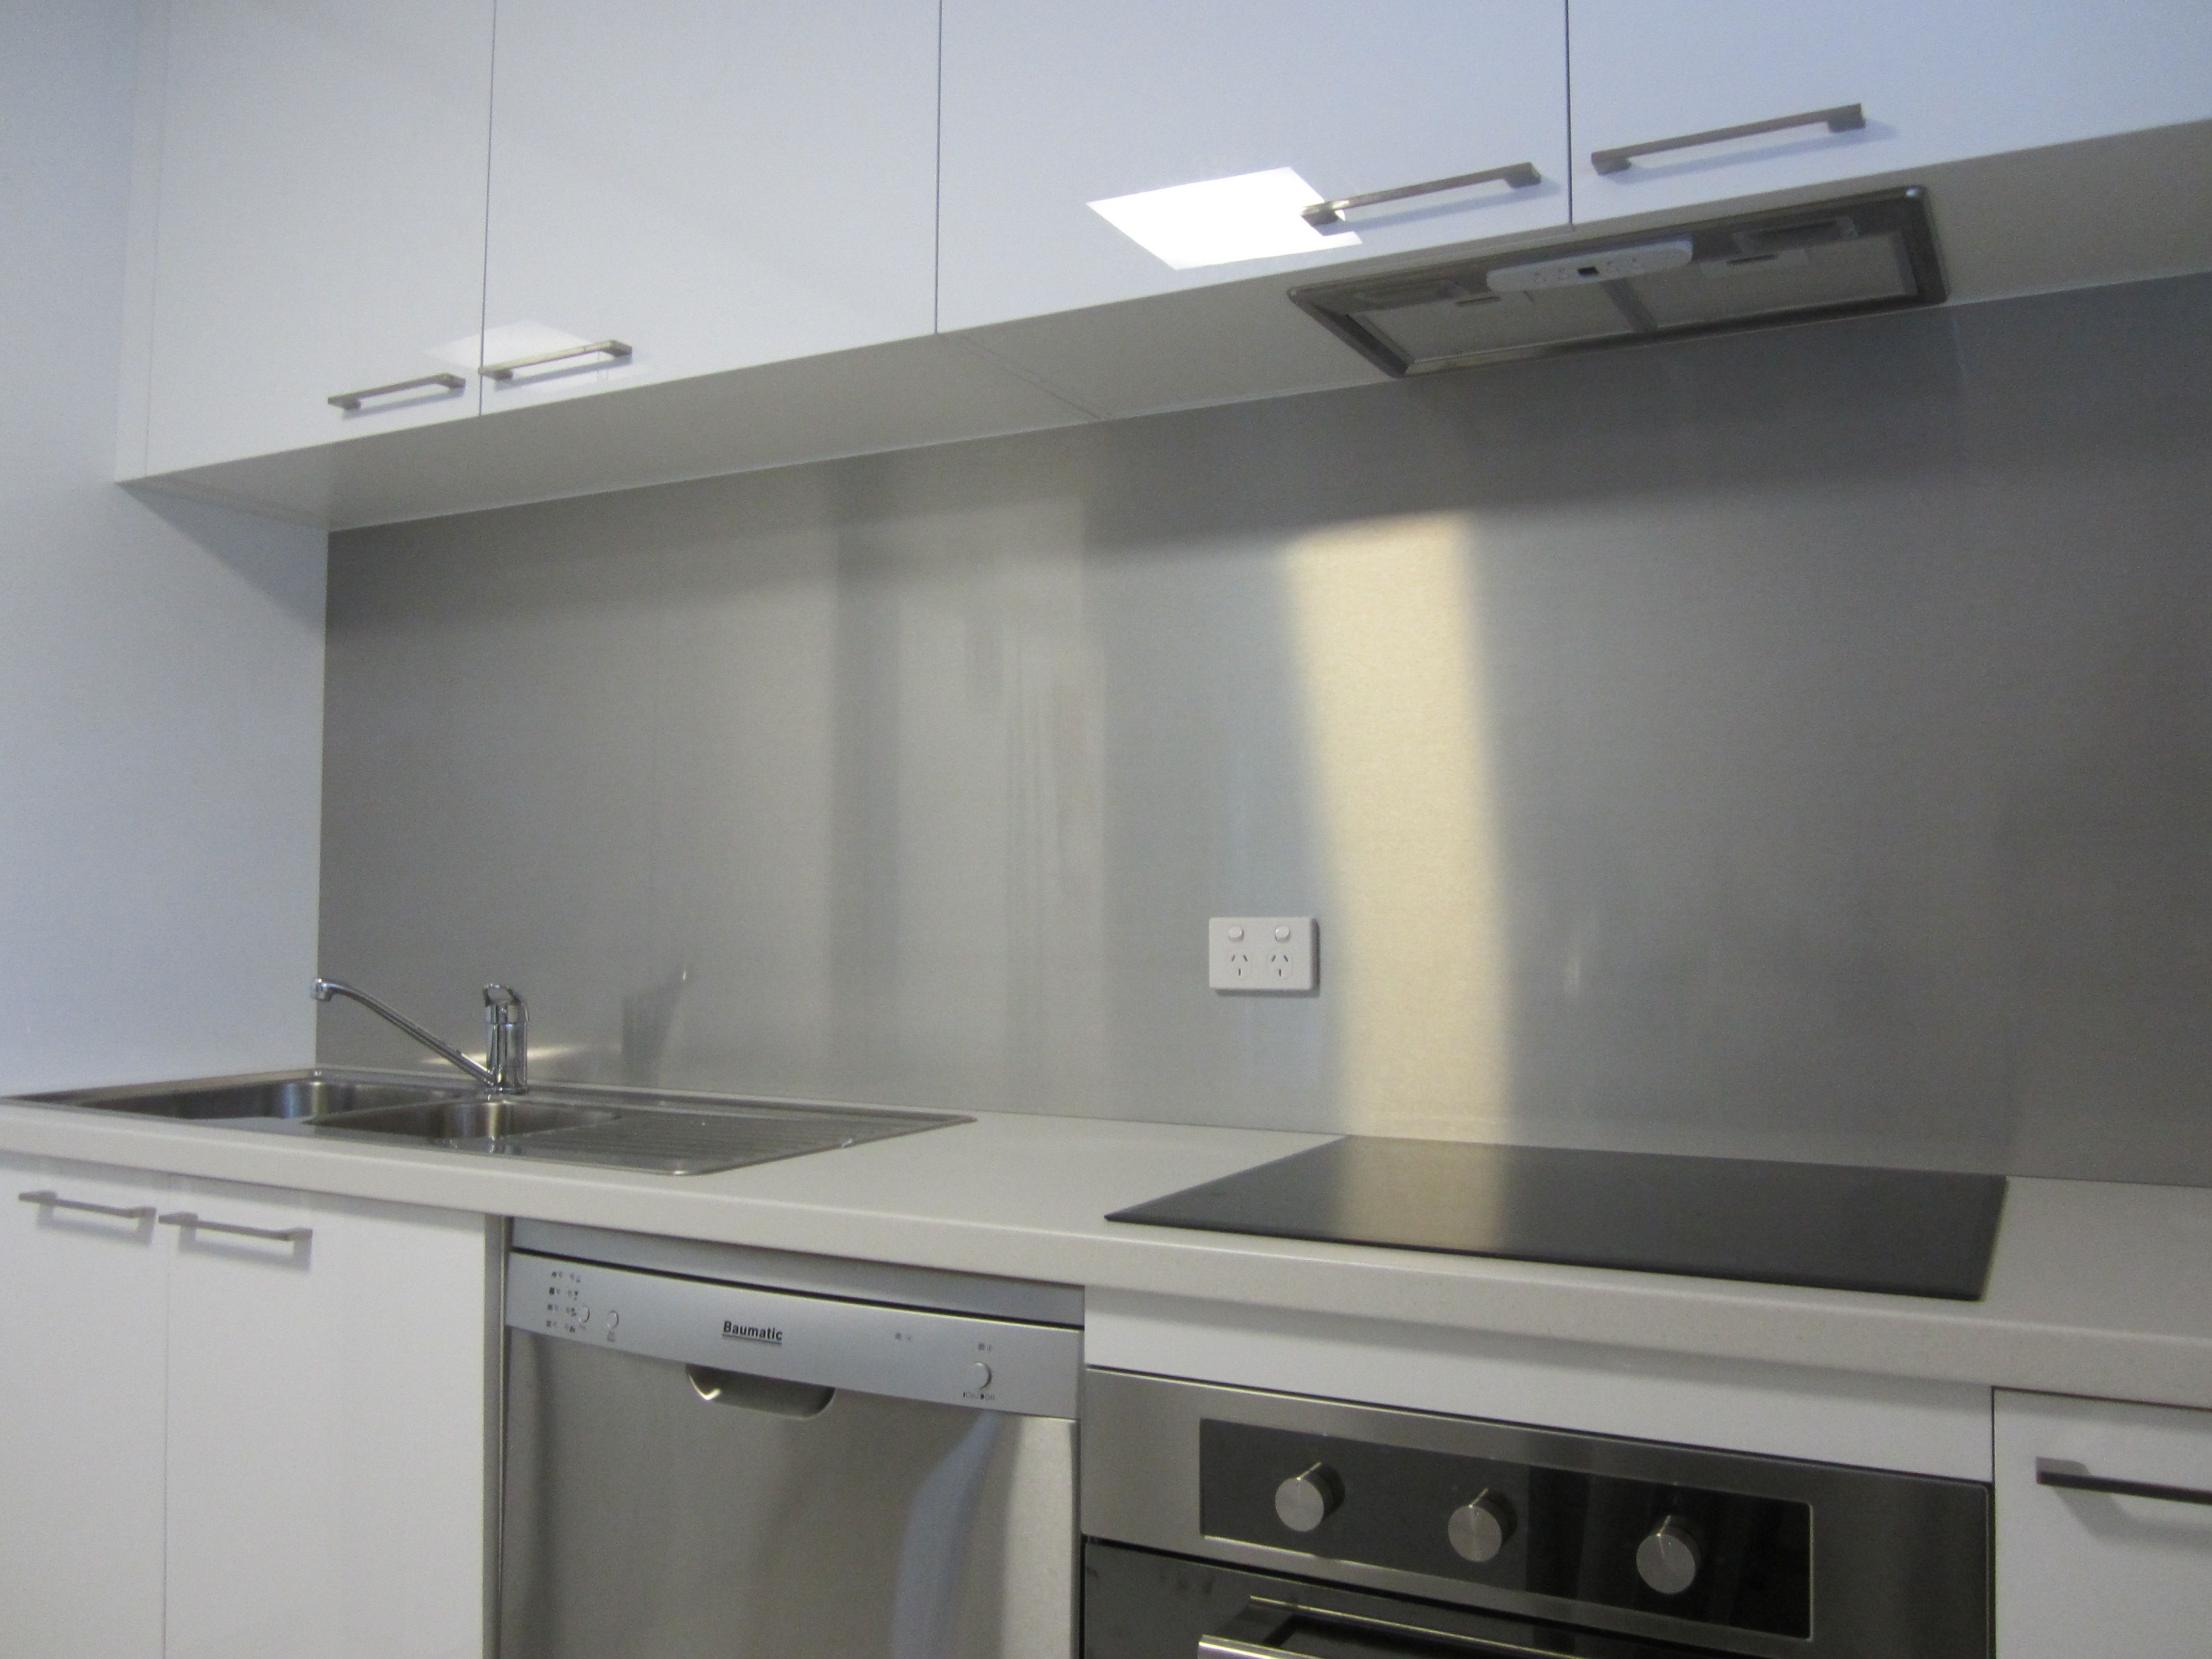 Stainless Steel Splashback The Splashback Goes So Well With Your Stainless Steel Appliances